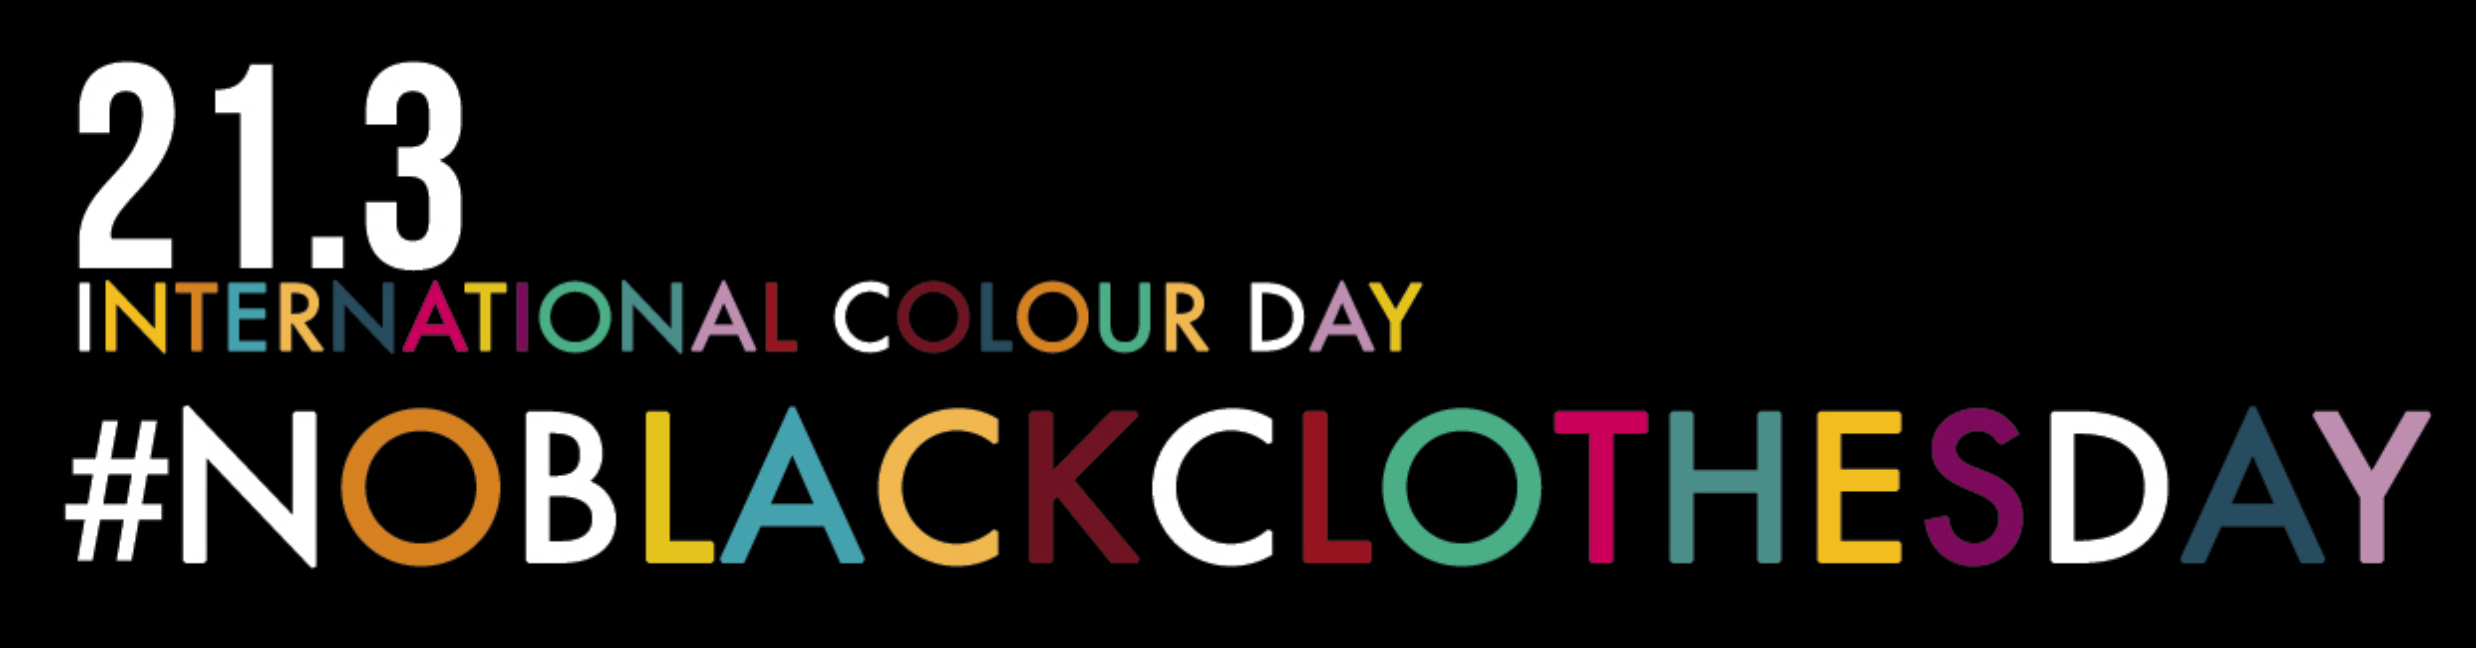 #noblackclothesday